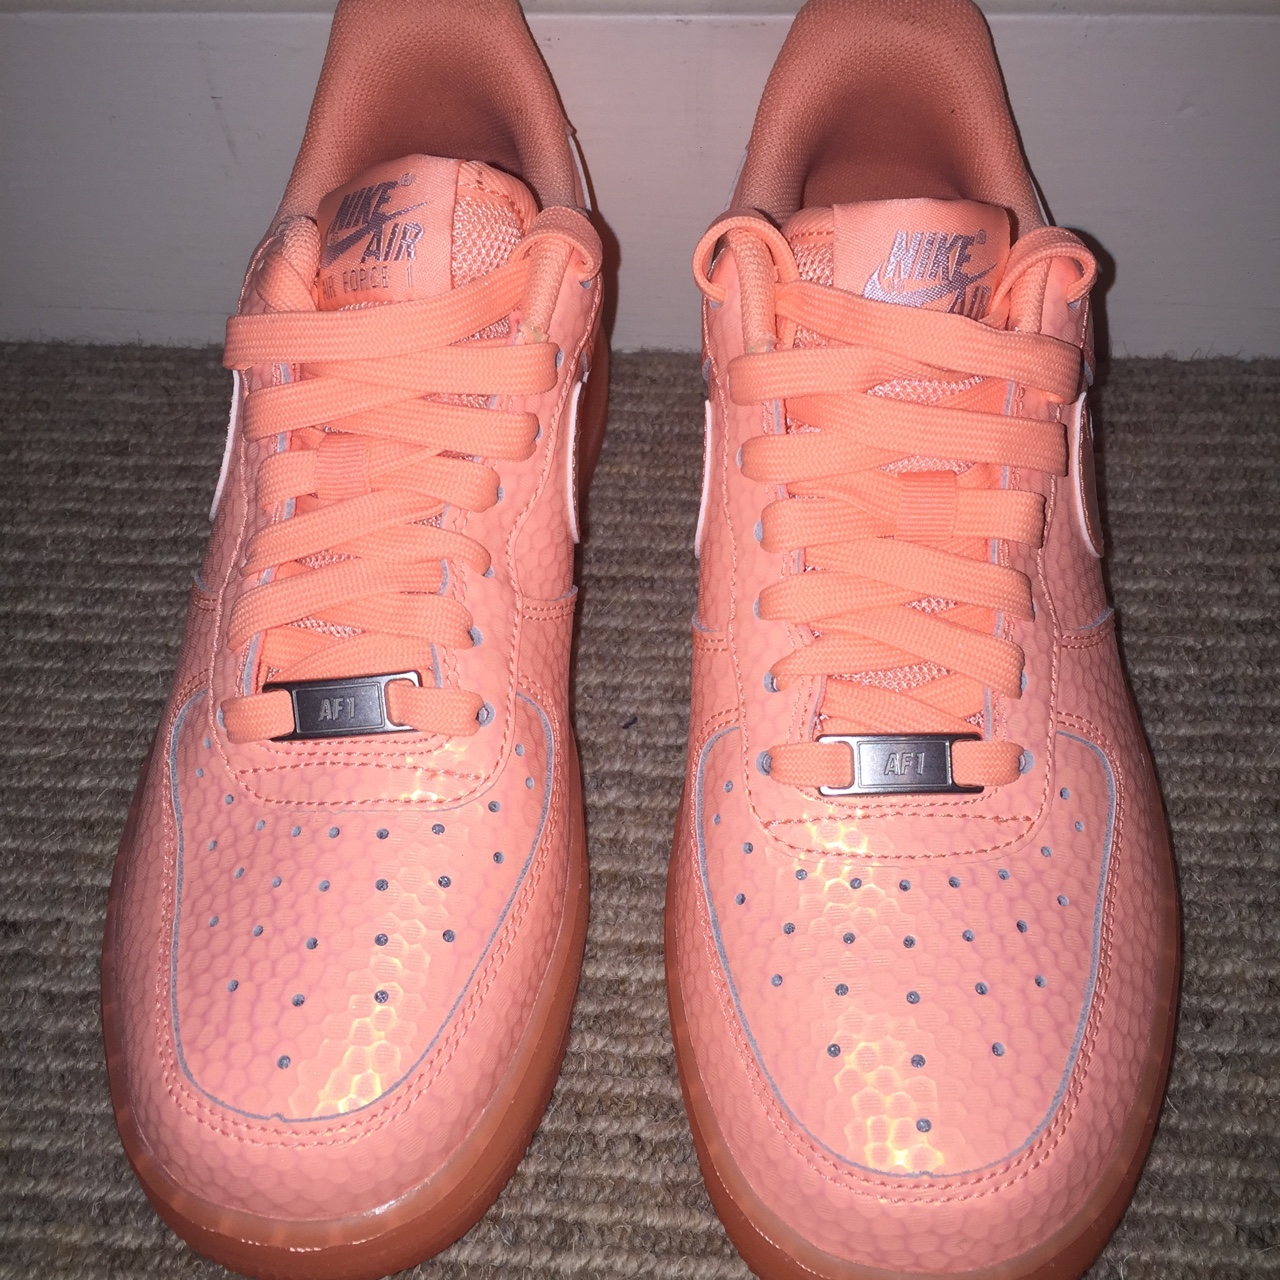 Nike Air Force 1 sunset glow these are limited Depop